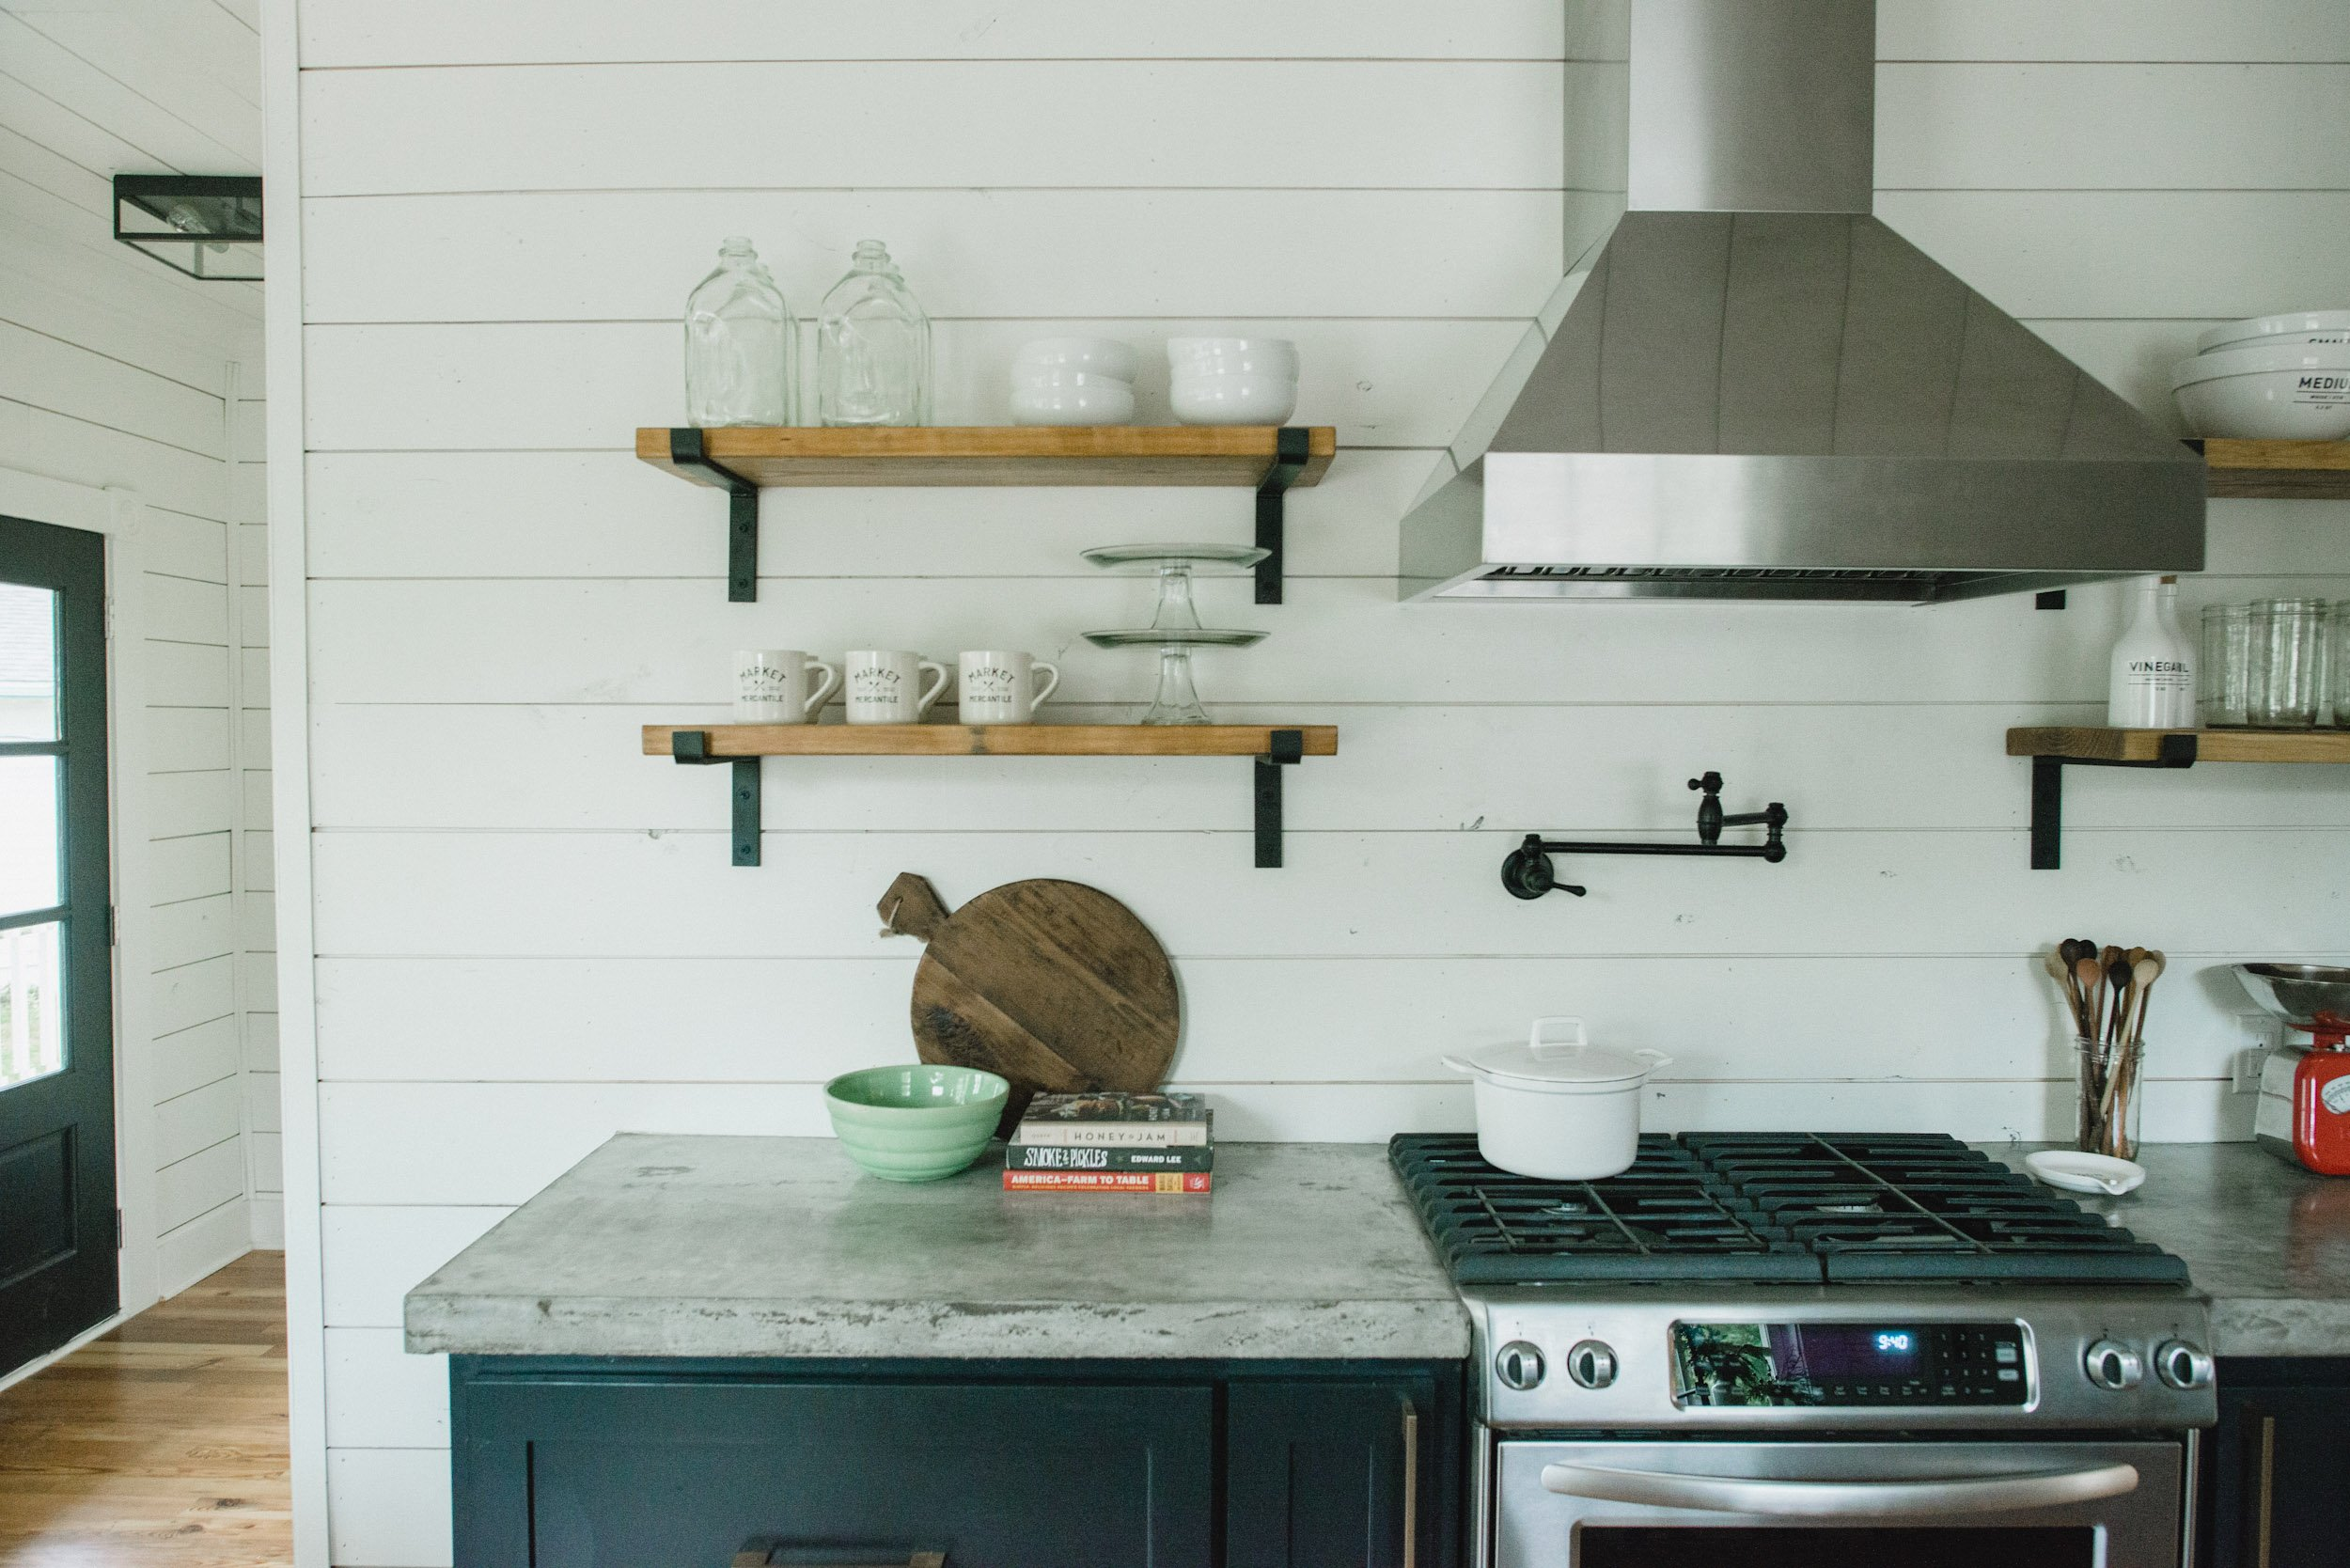 The wonderful kitchen inside Fixer Upper Magnolia House